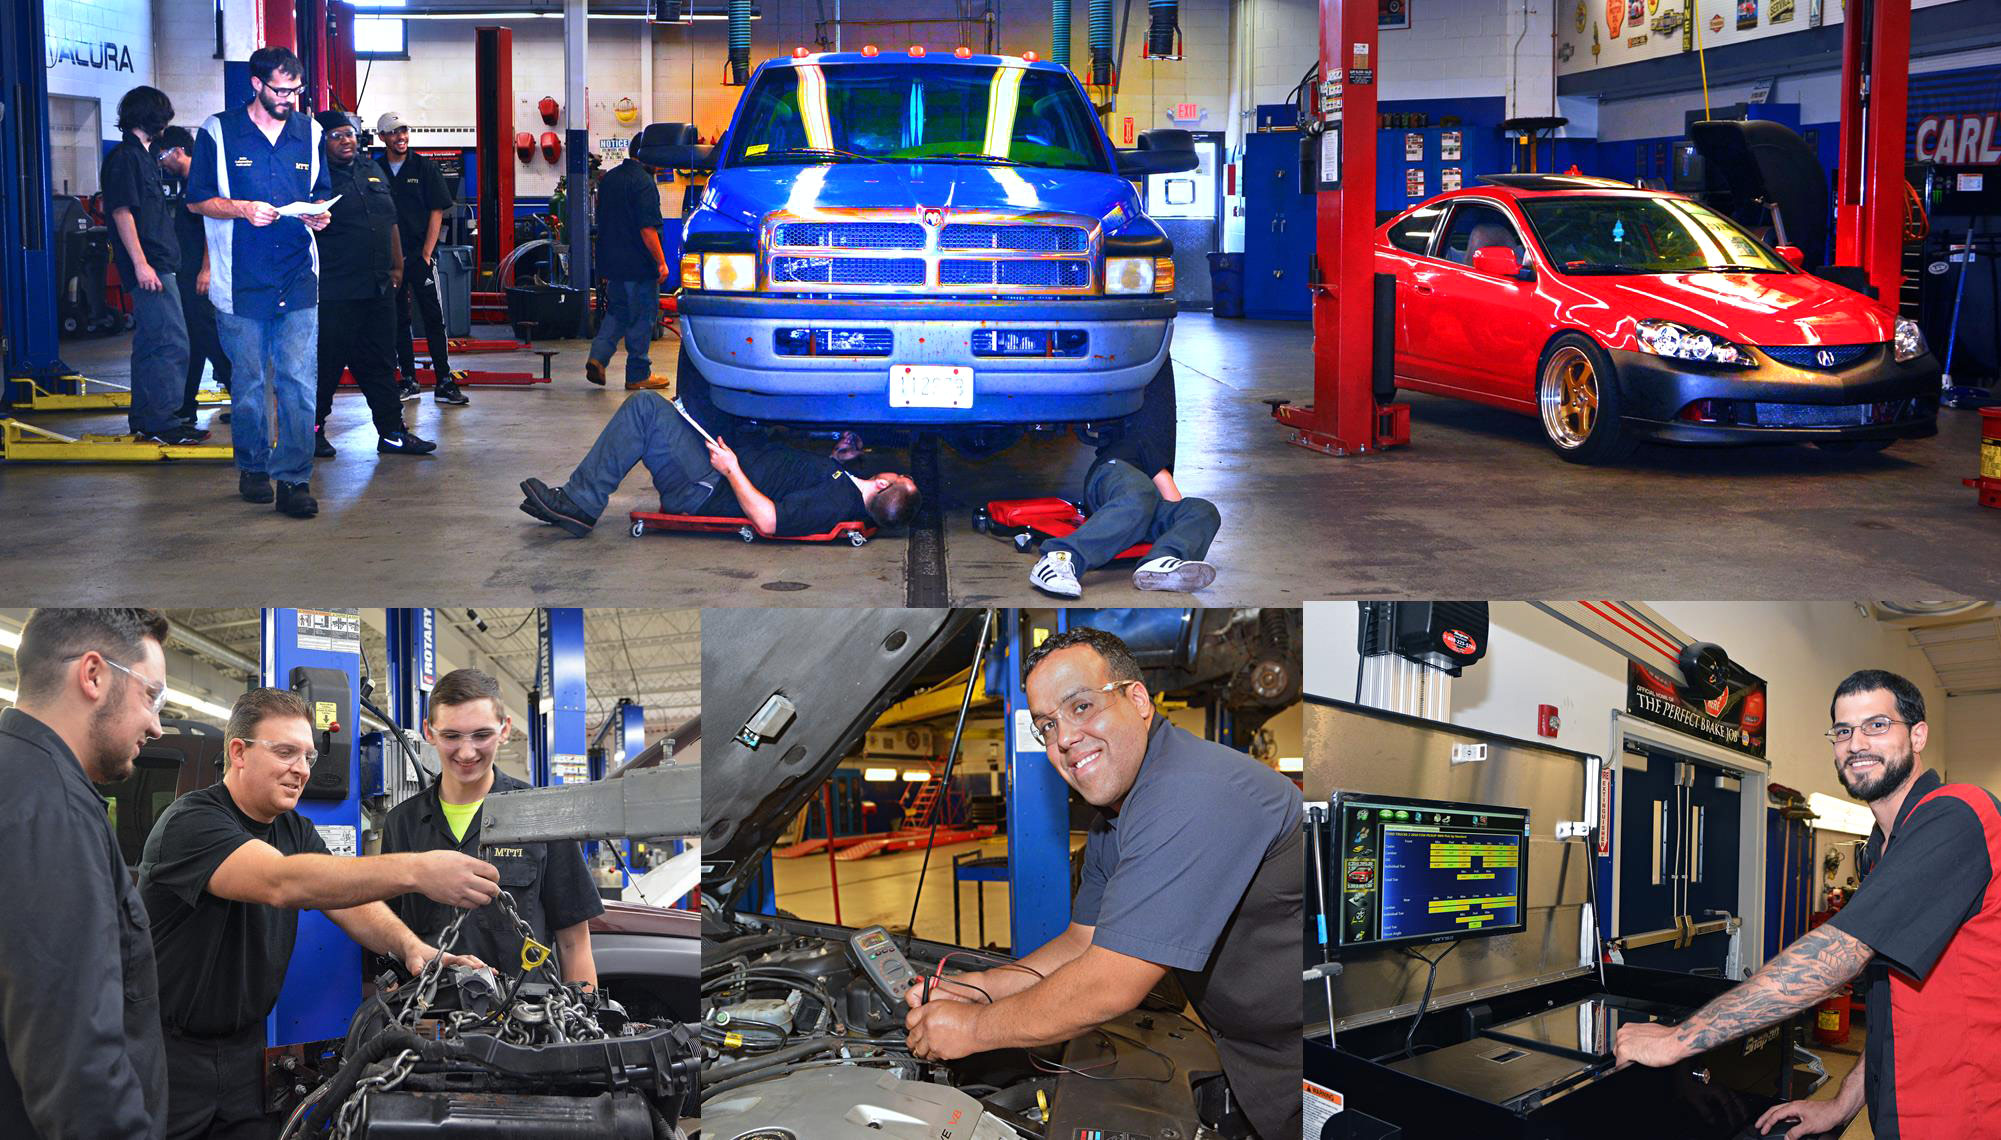 Glen, Arturo and Rich Are Highly Experienced Automotive Technicians & Instructors At MTTI In Seekonk, MA.